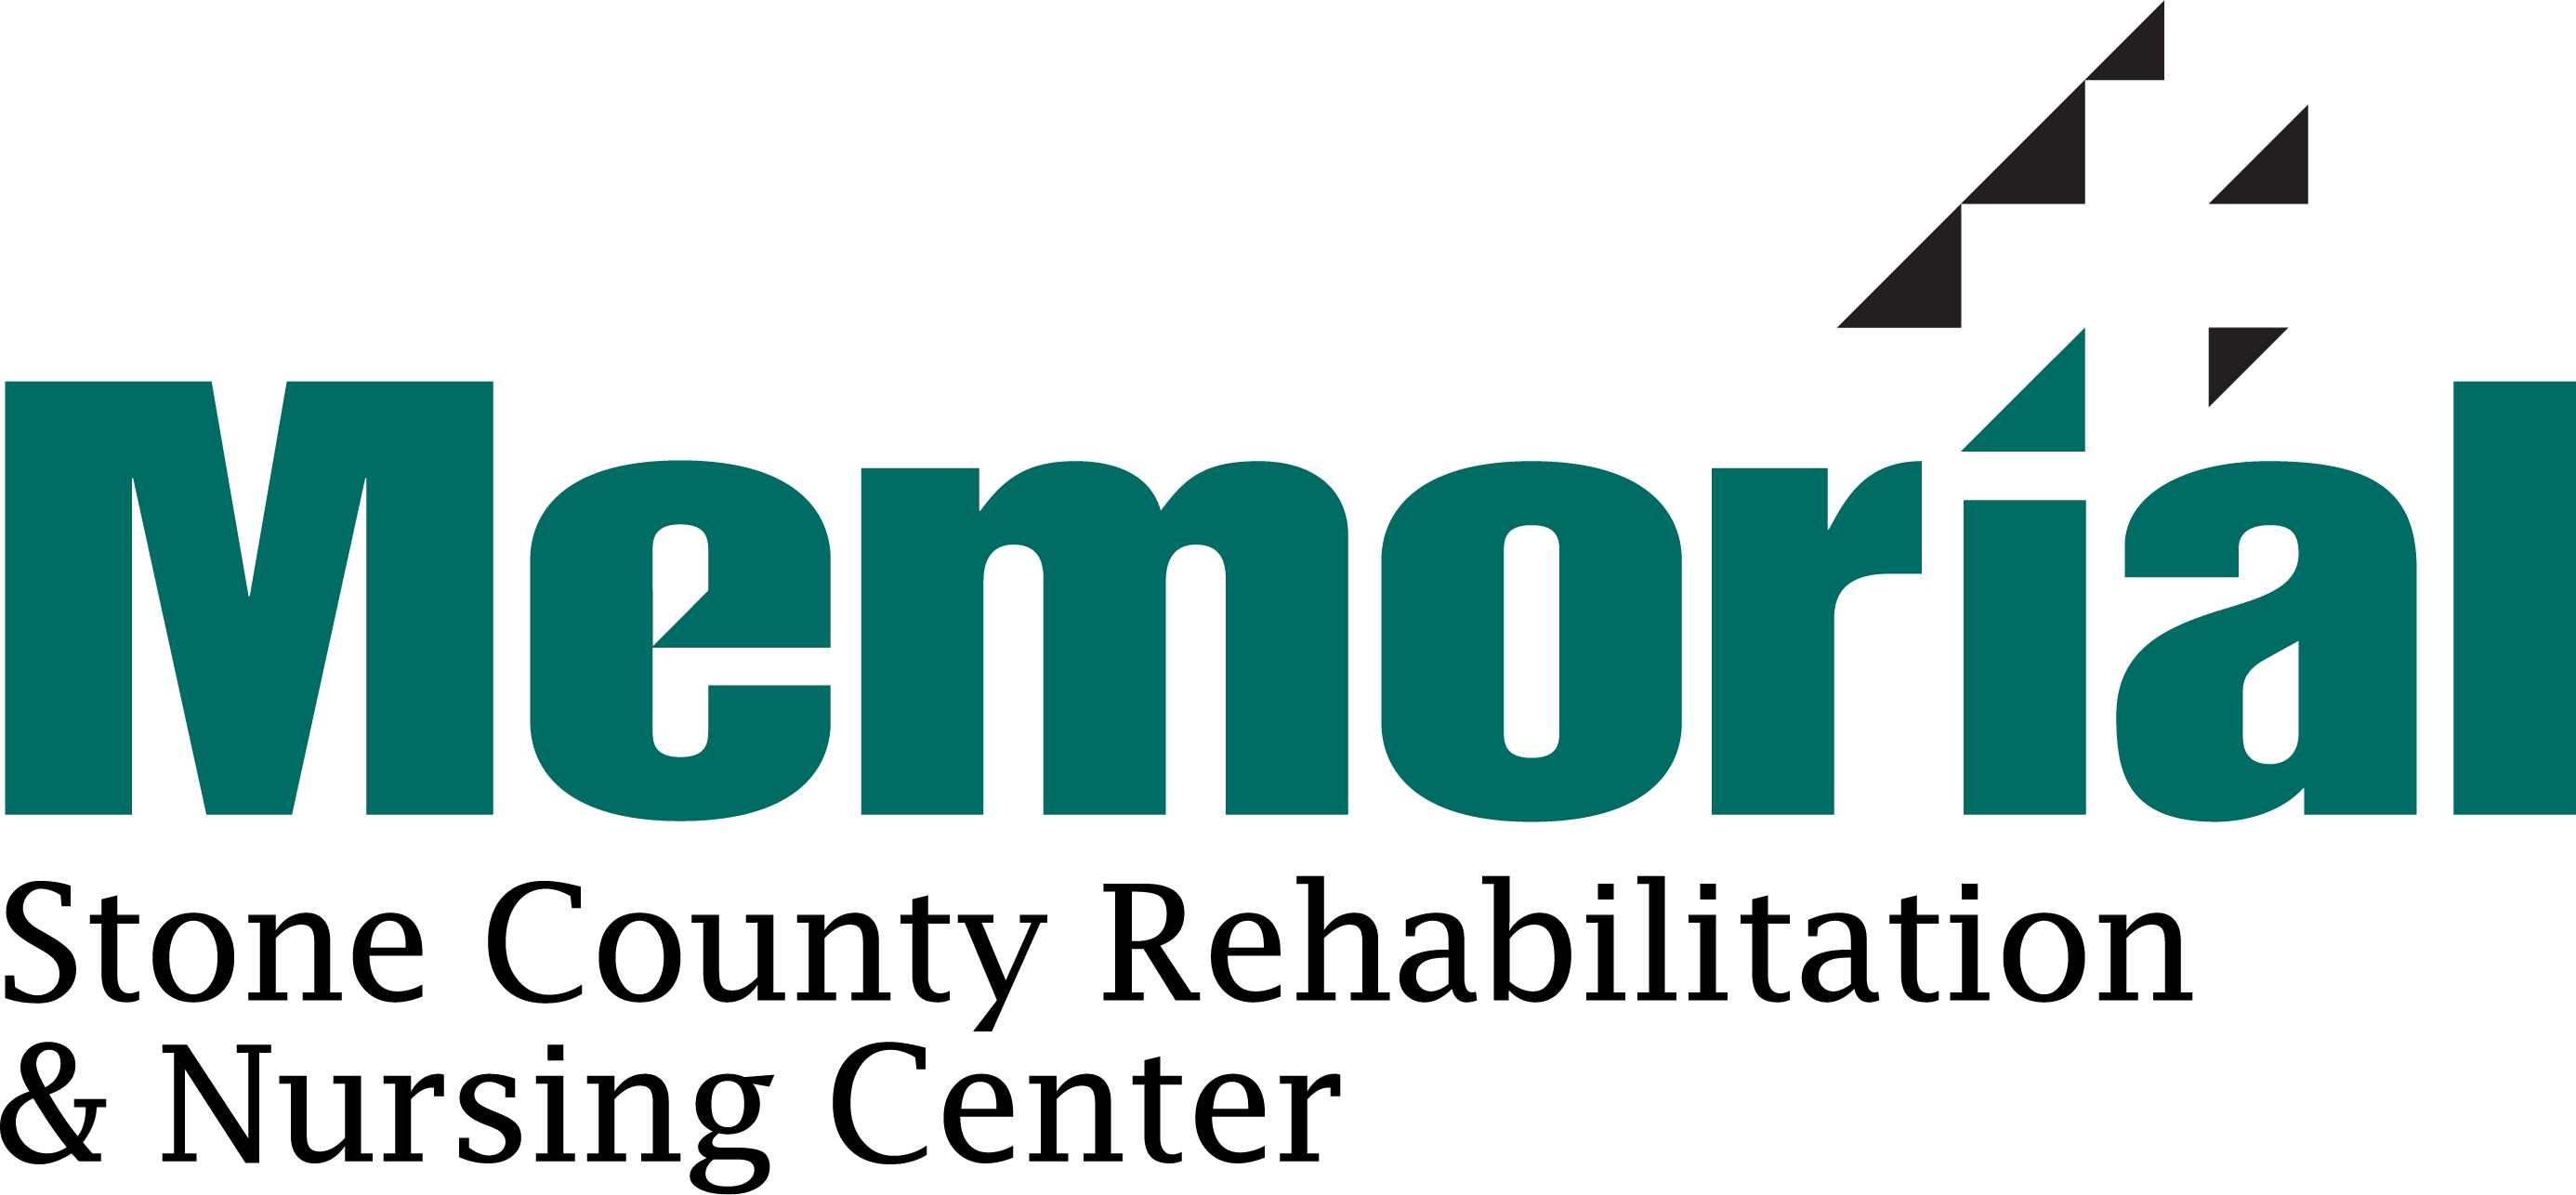 Stone County Nursing and Rehabilitation